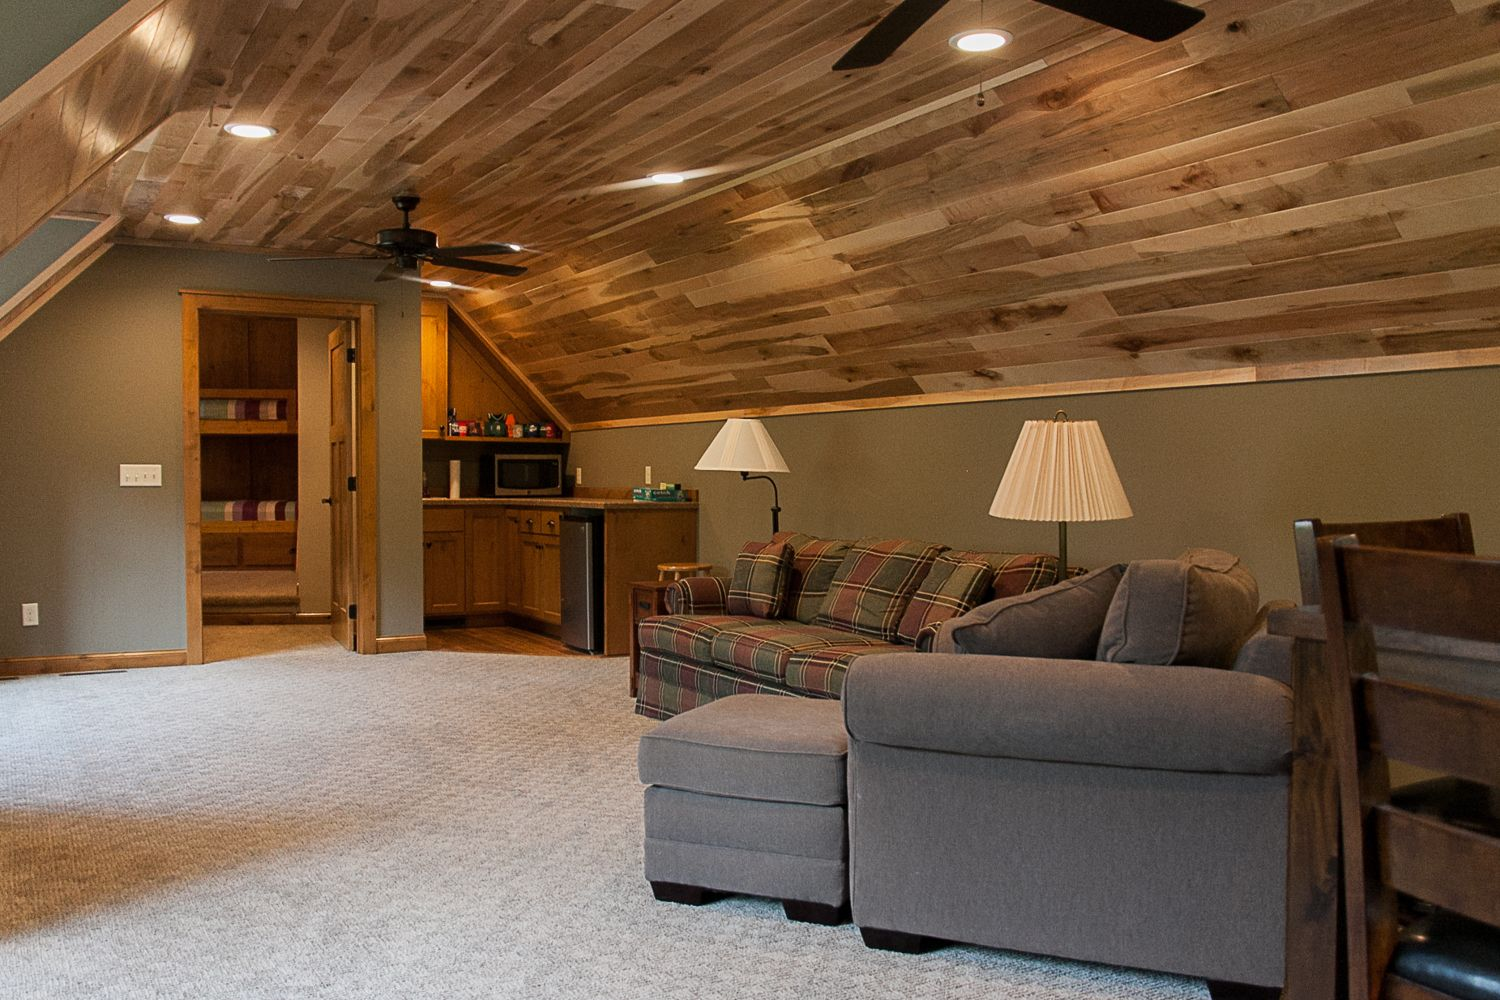 Hickory Ceiling Bonus Room Kid Room Above Garage In A Cabin Or Lake